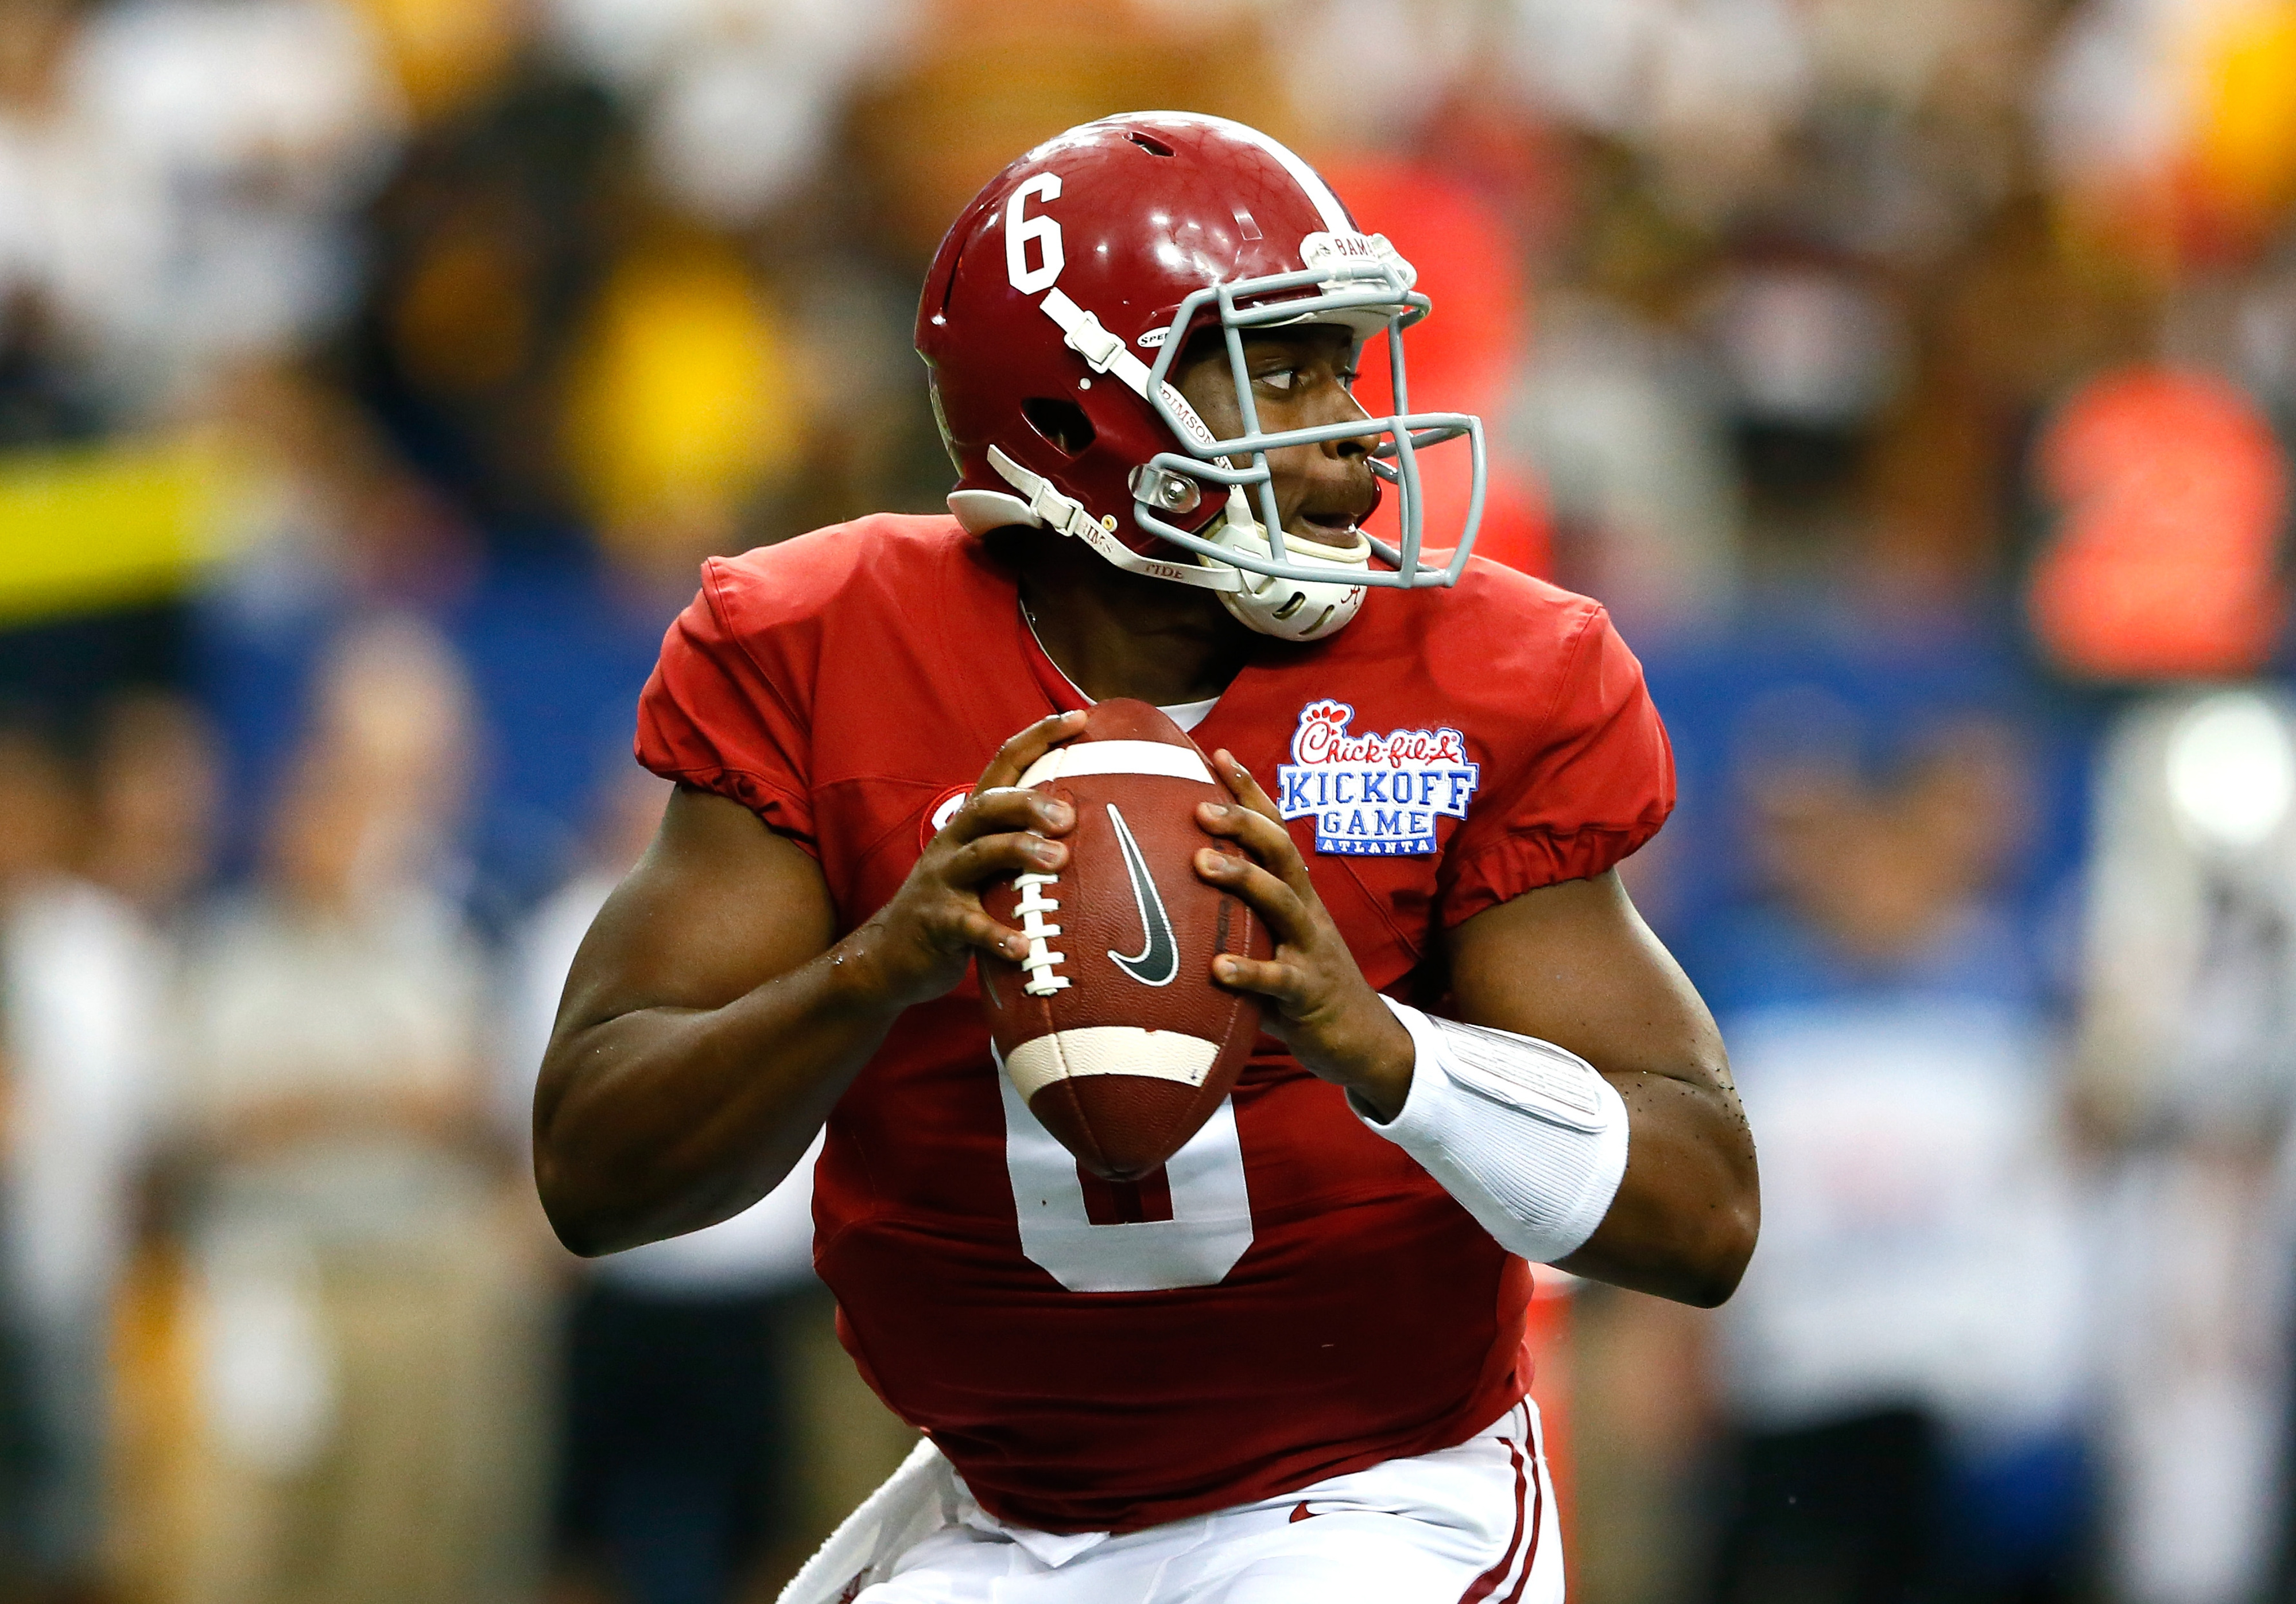 Blake Sims gets the win in his first Bama start